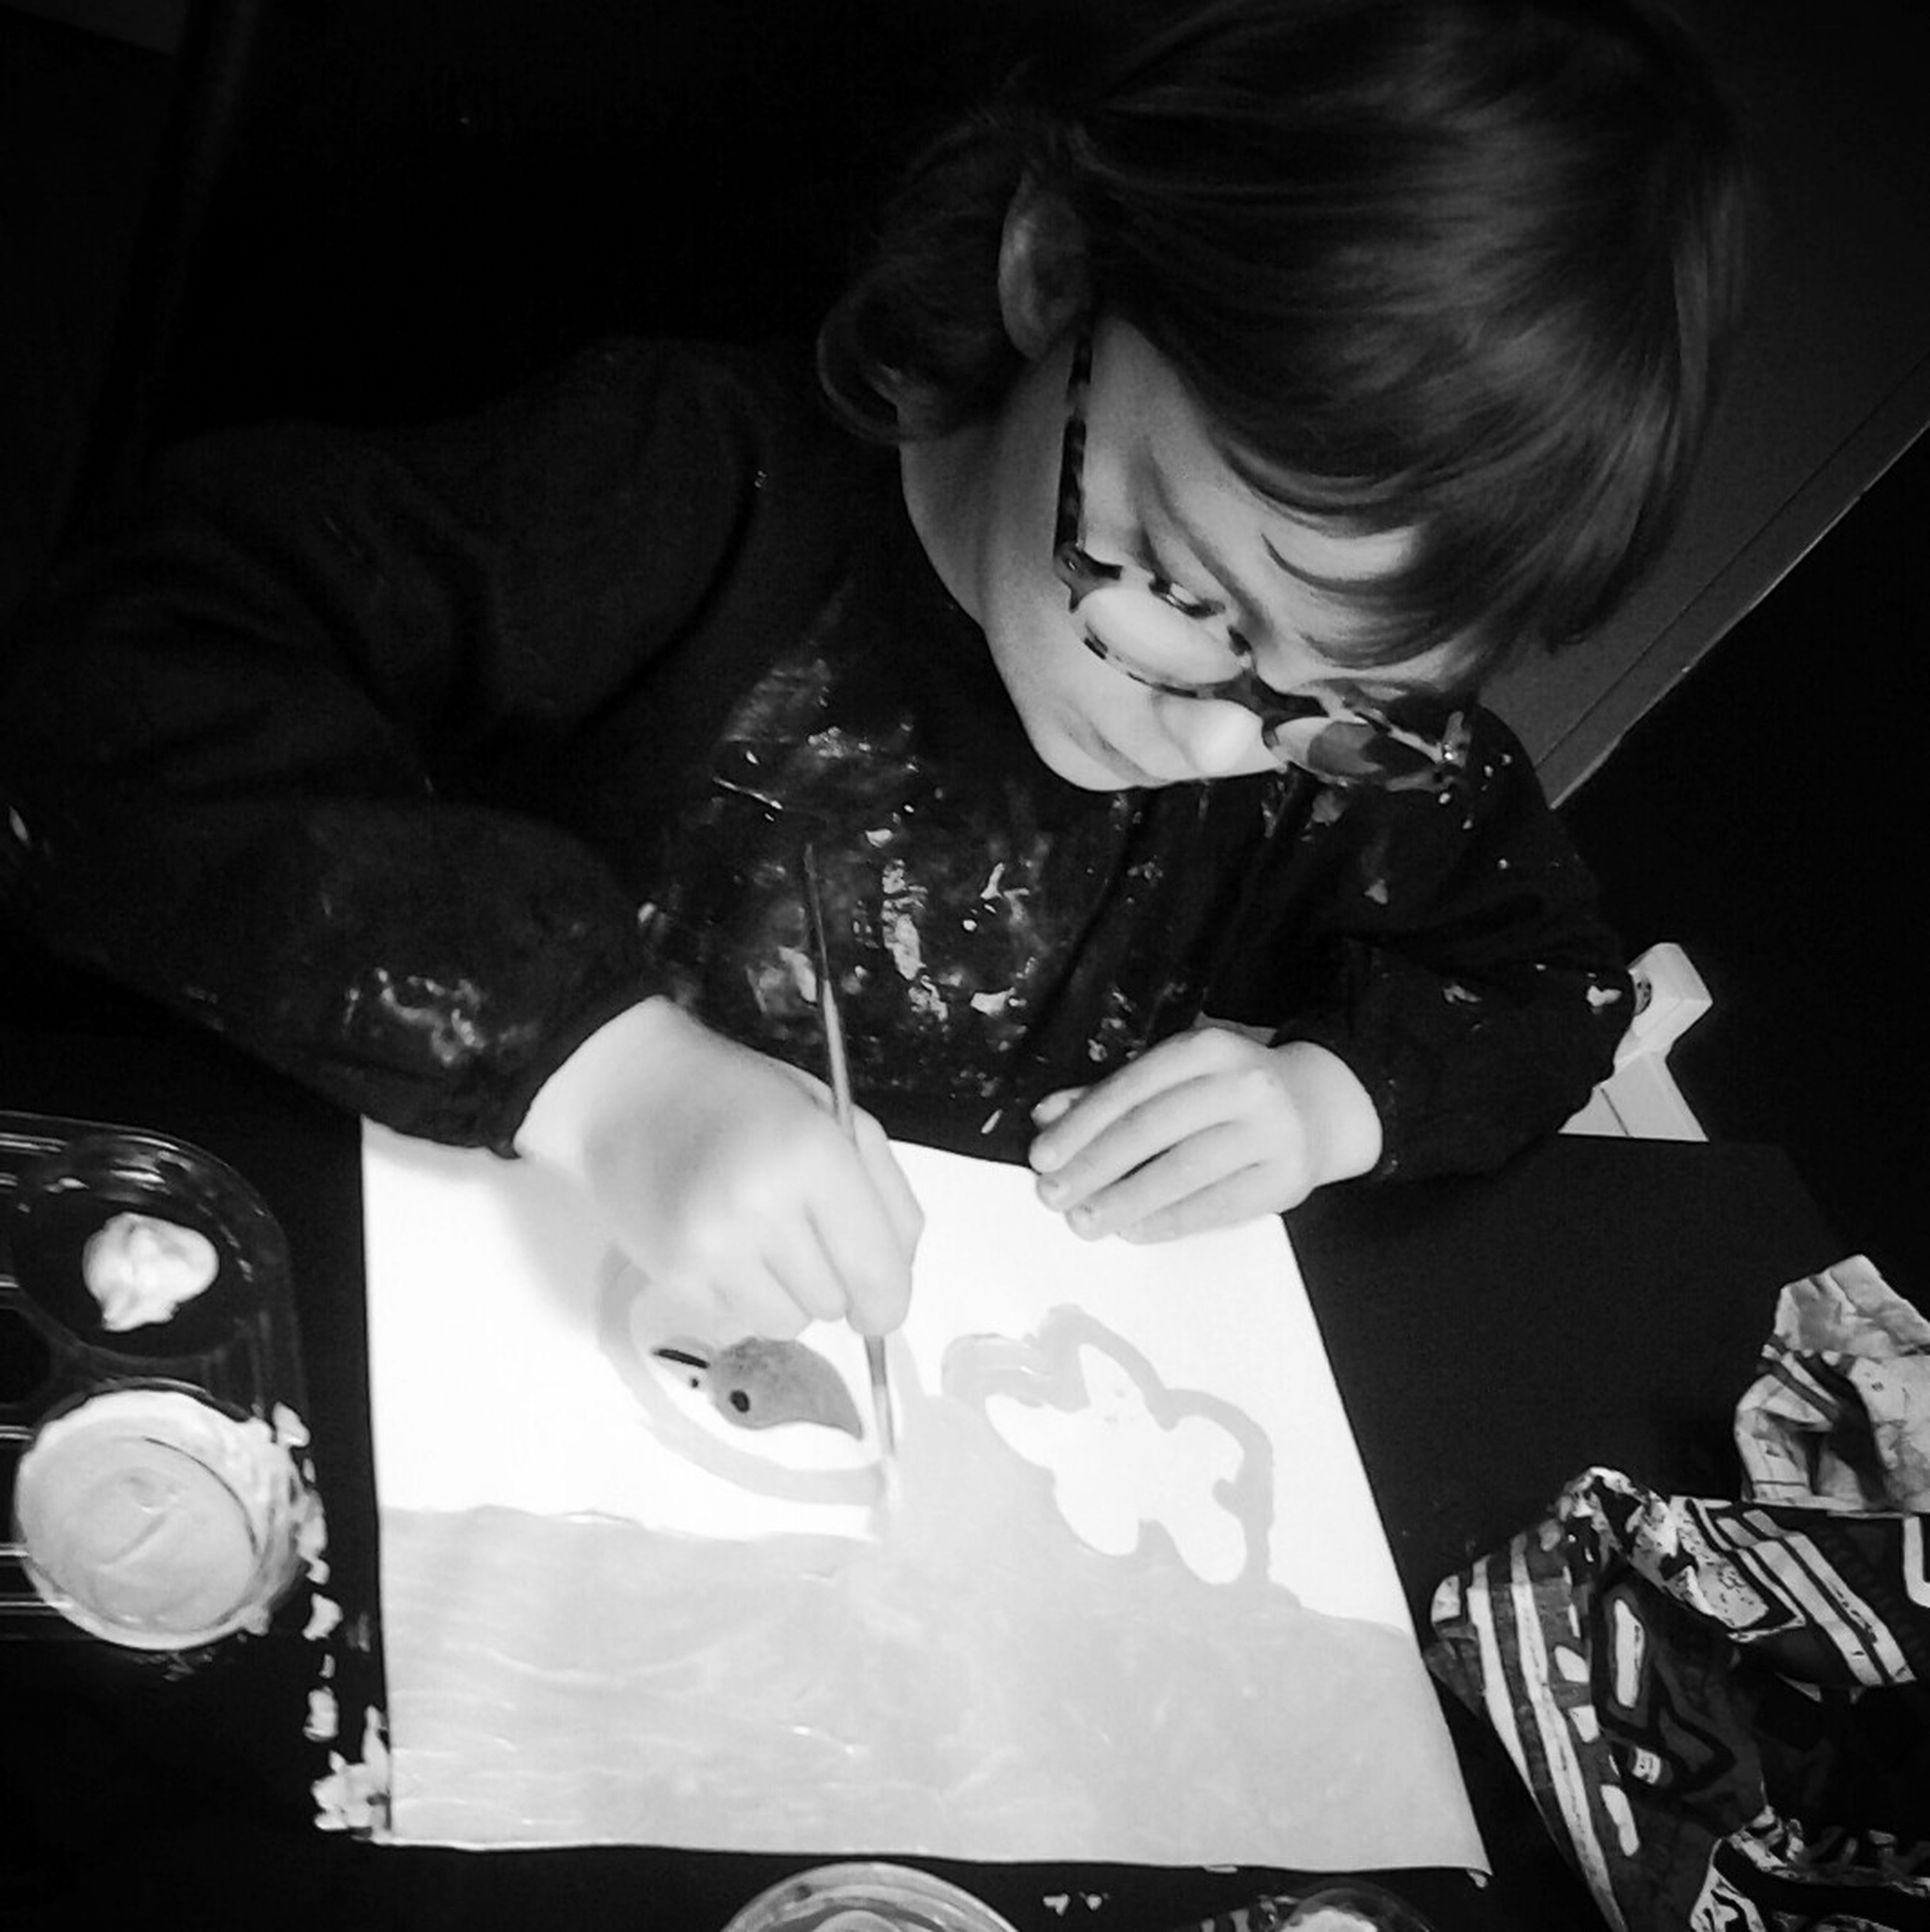 painting a rainbow and a blue bird Black And White Photography Kids' Artwork Black&white Painting #Creating